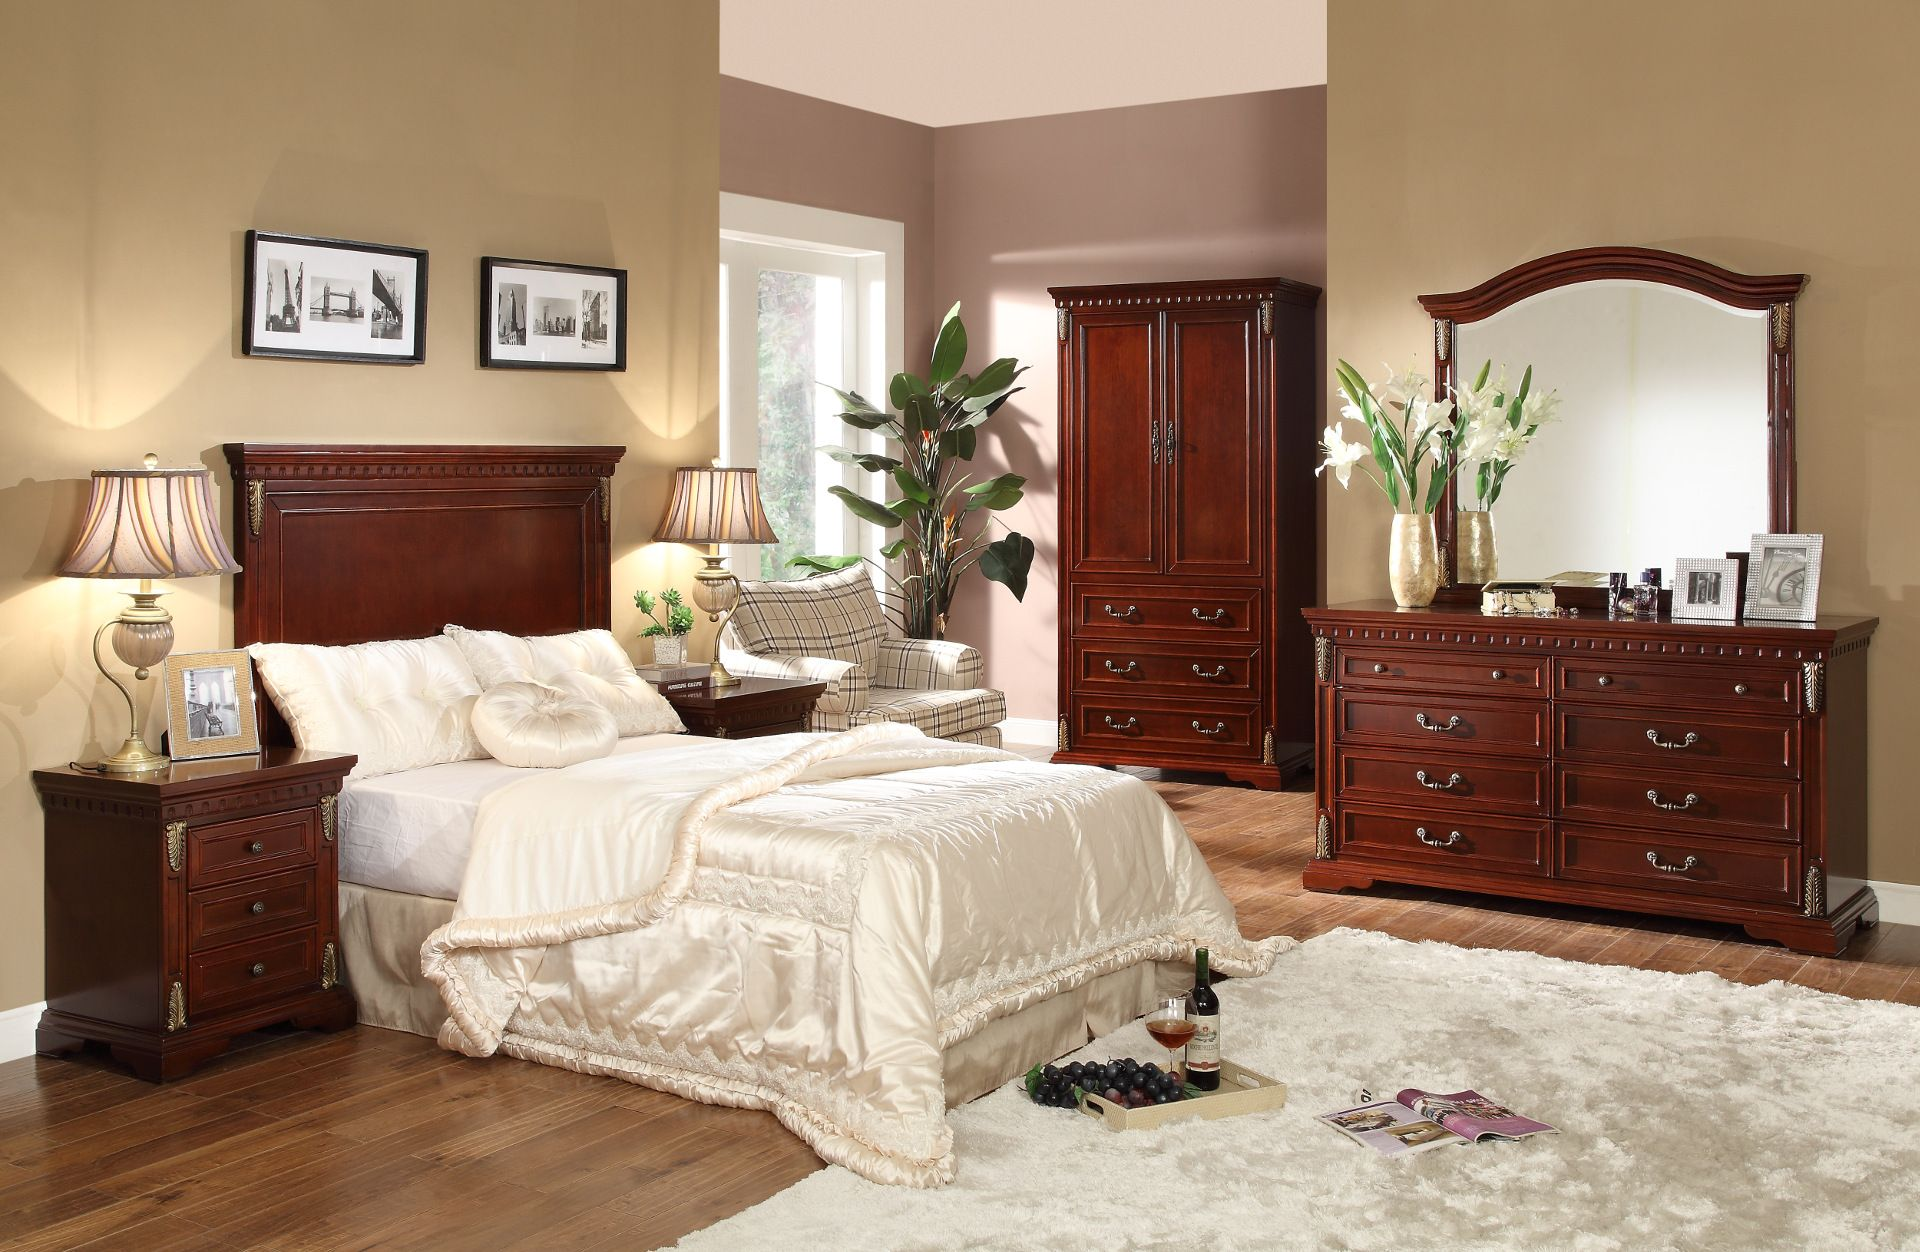 Take a bow, for this traditional bedroom set definitely